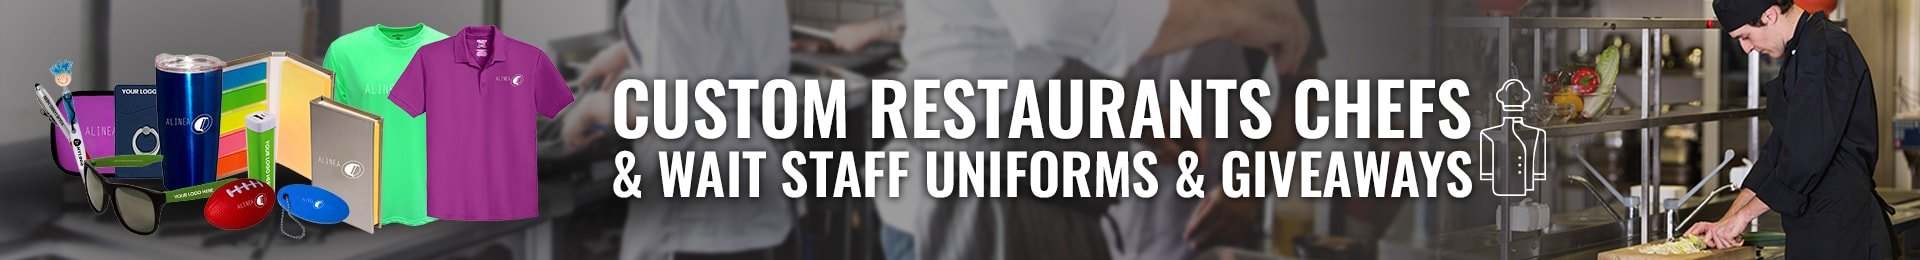 Custom Restaurants, Chefs, & Wait Staff T-Shirts